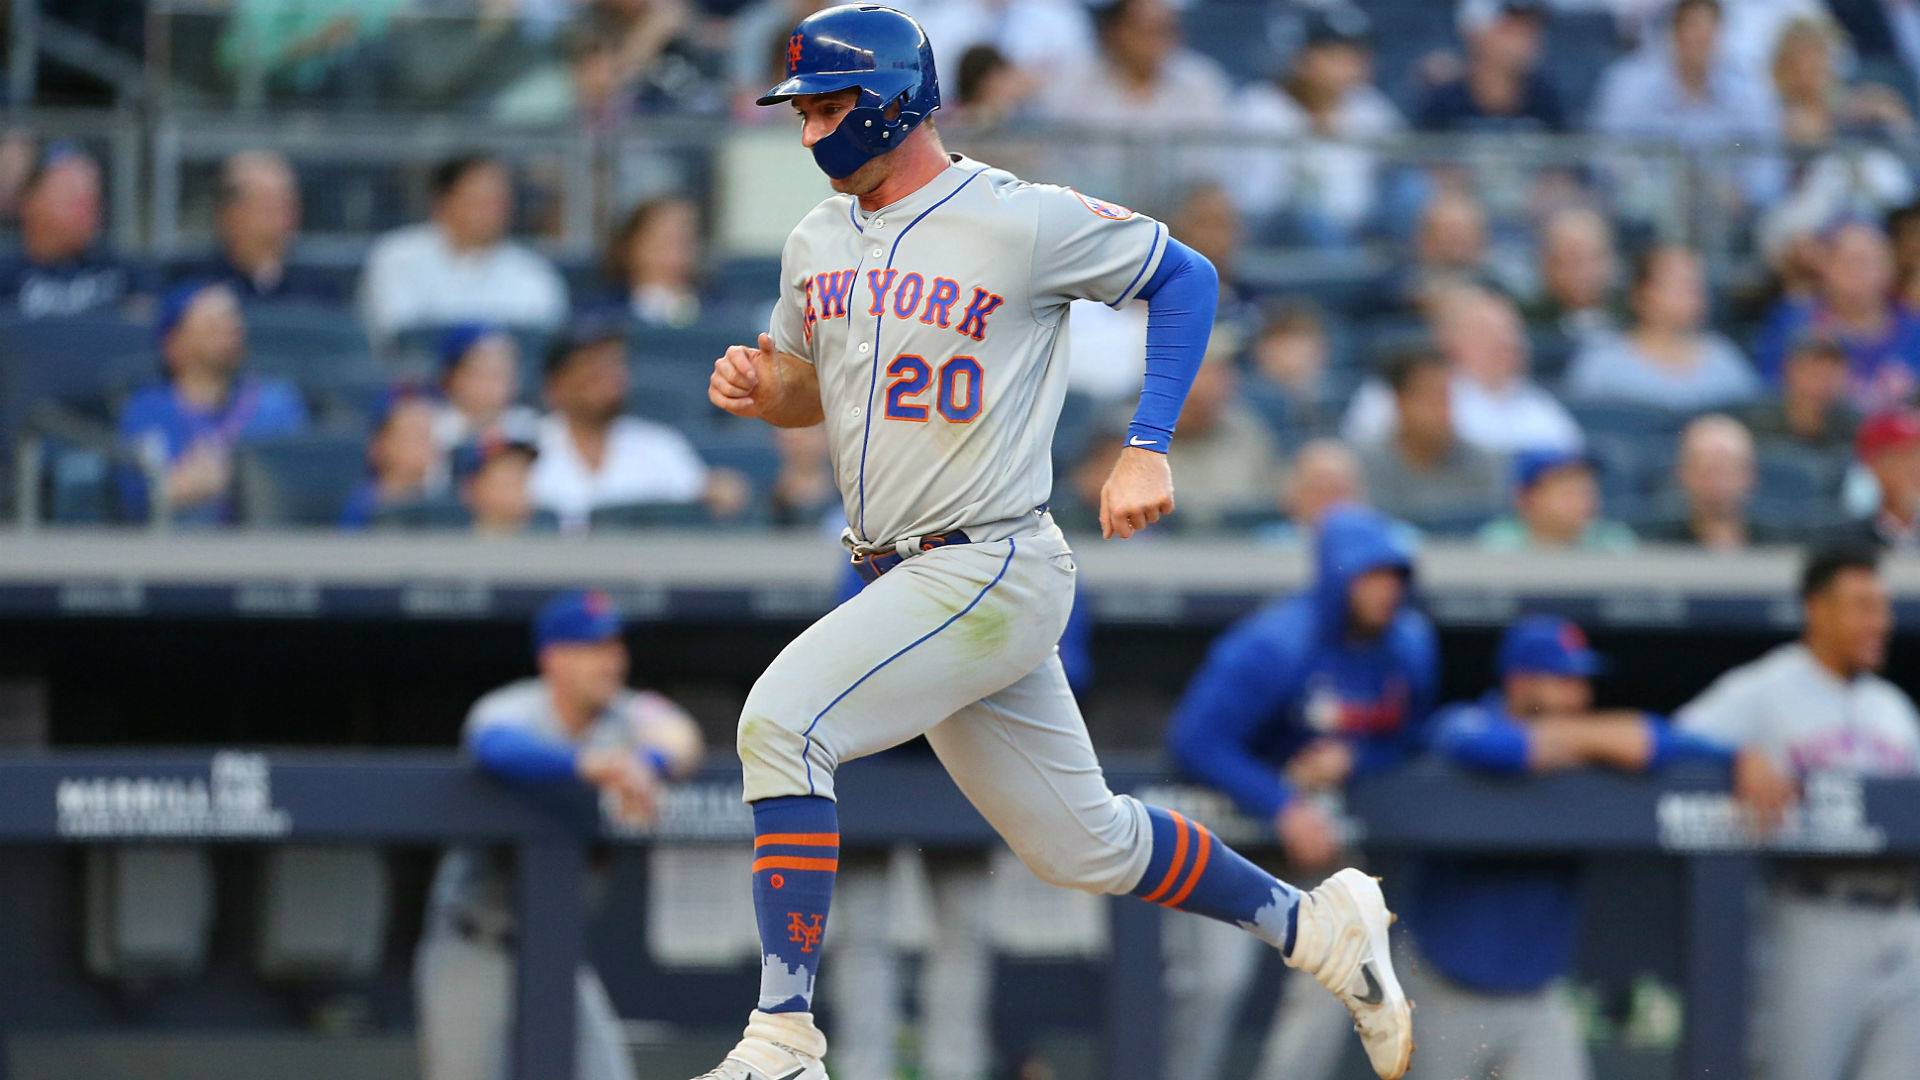 Beyond the joy Mets players take out of beating the rival Yankees, their nightcap win kept them five games out of first in the NL East.